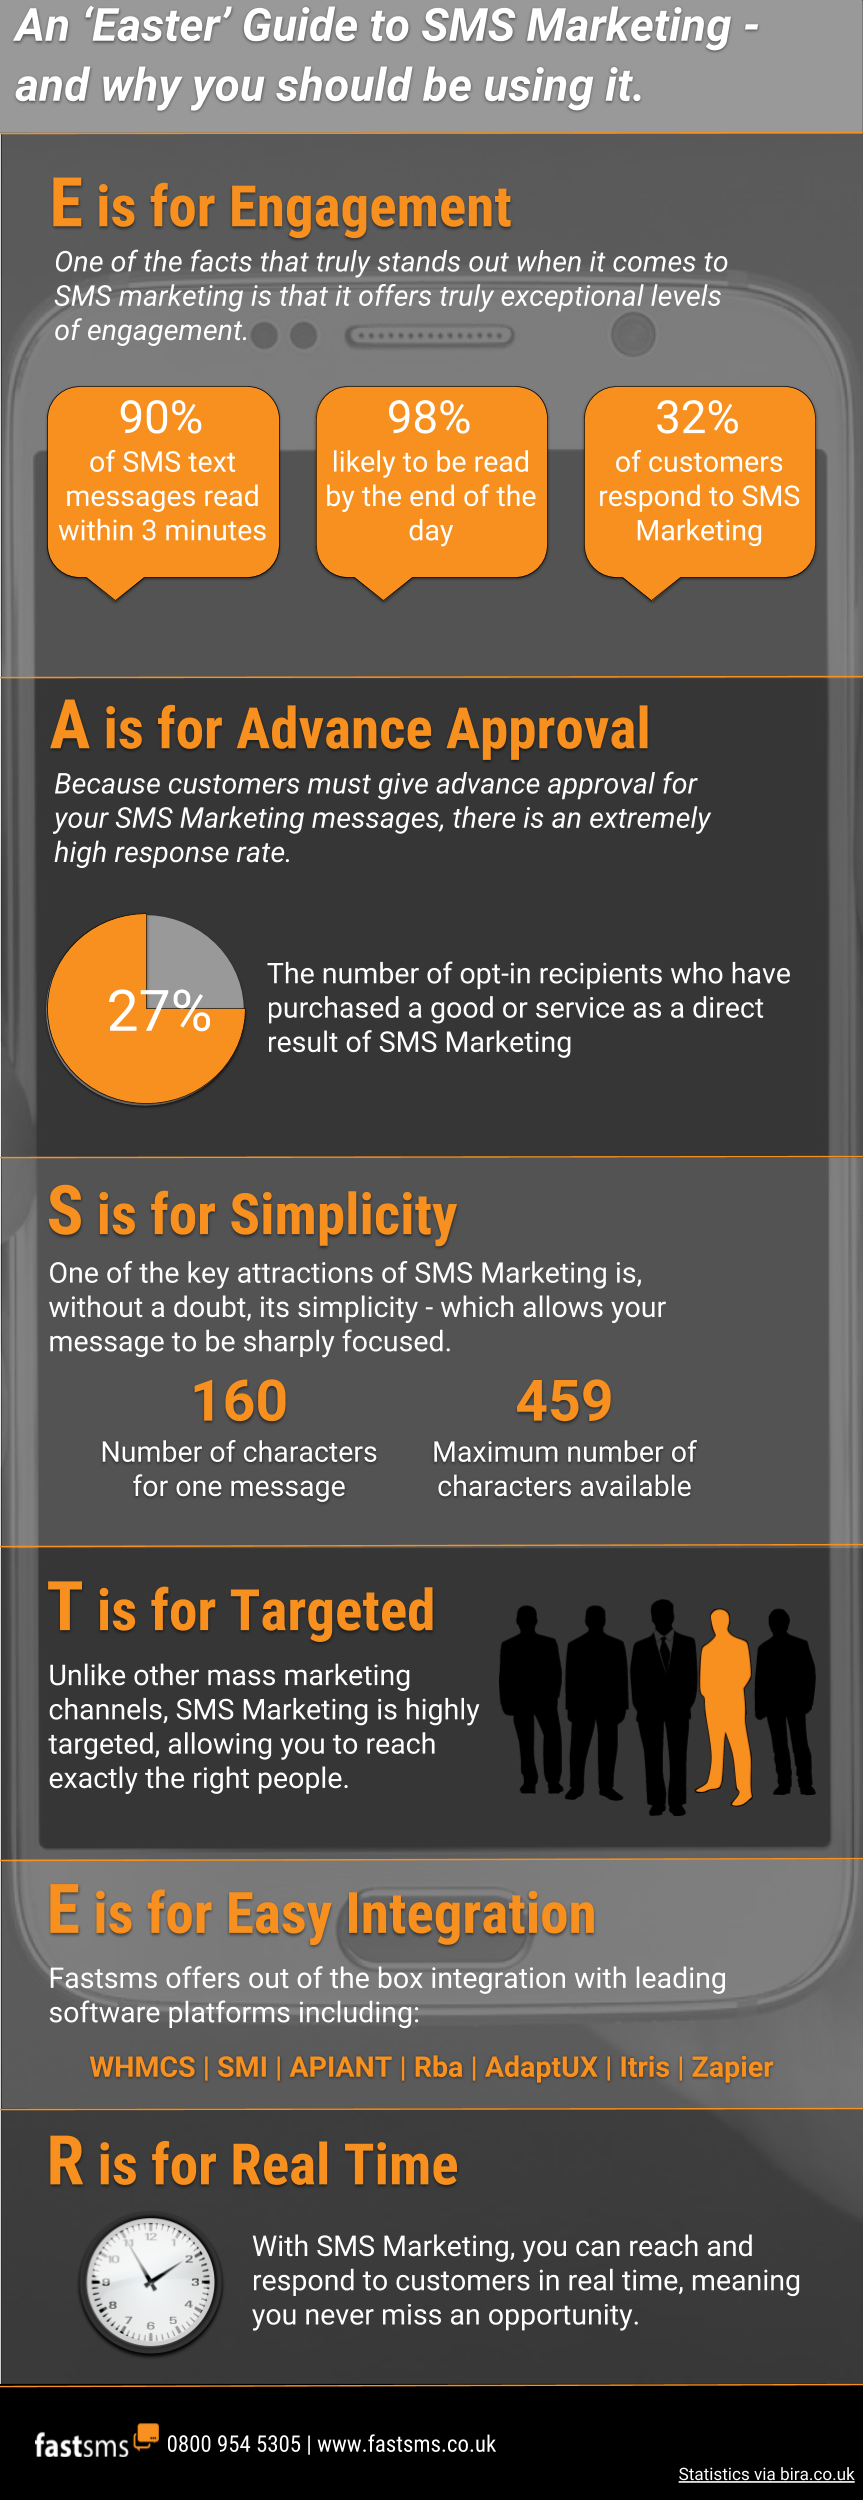 An Easter Guide to SMS Marketing - Infographic